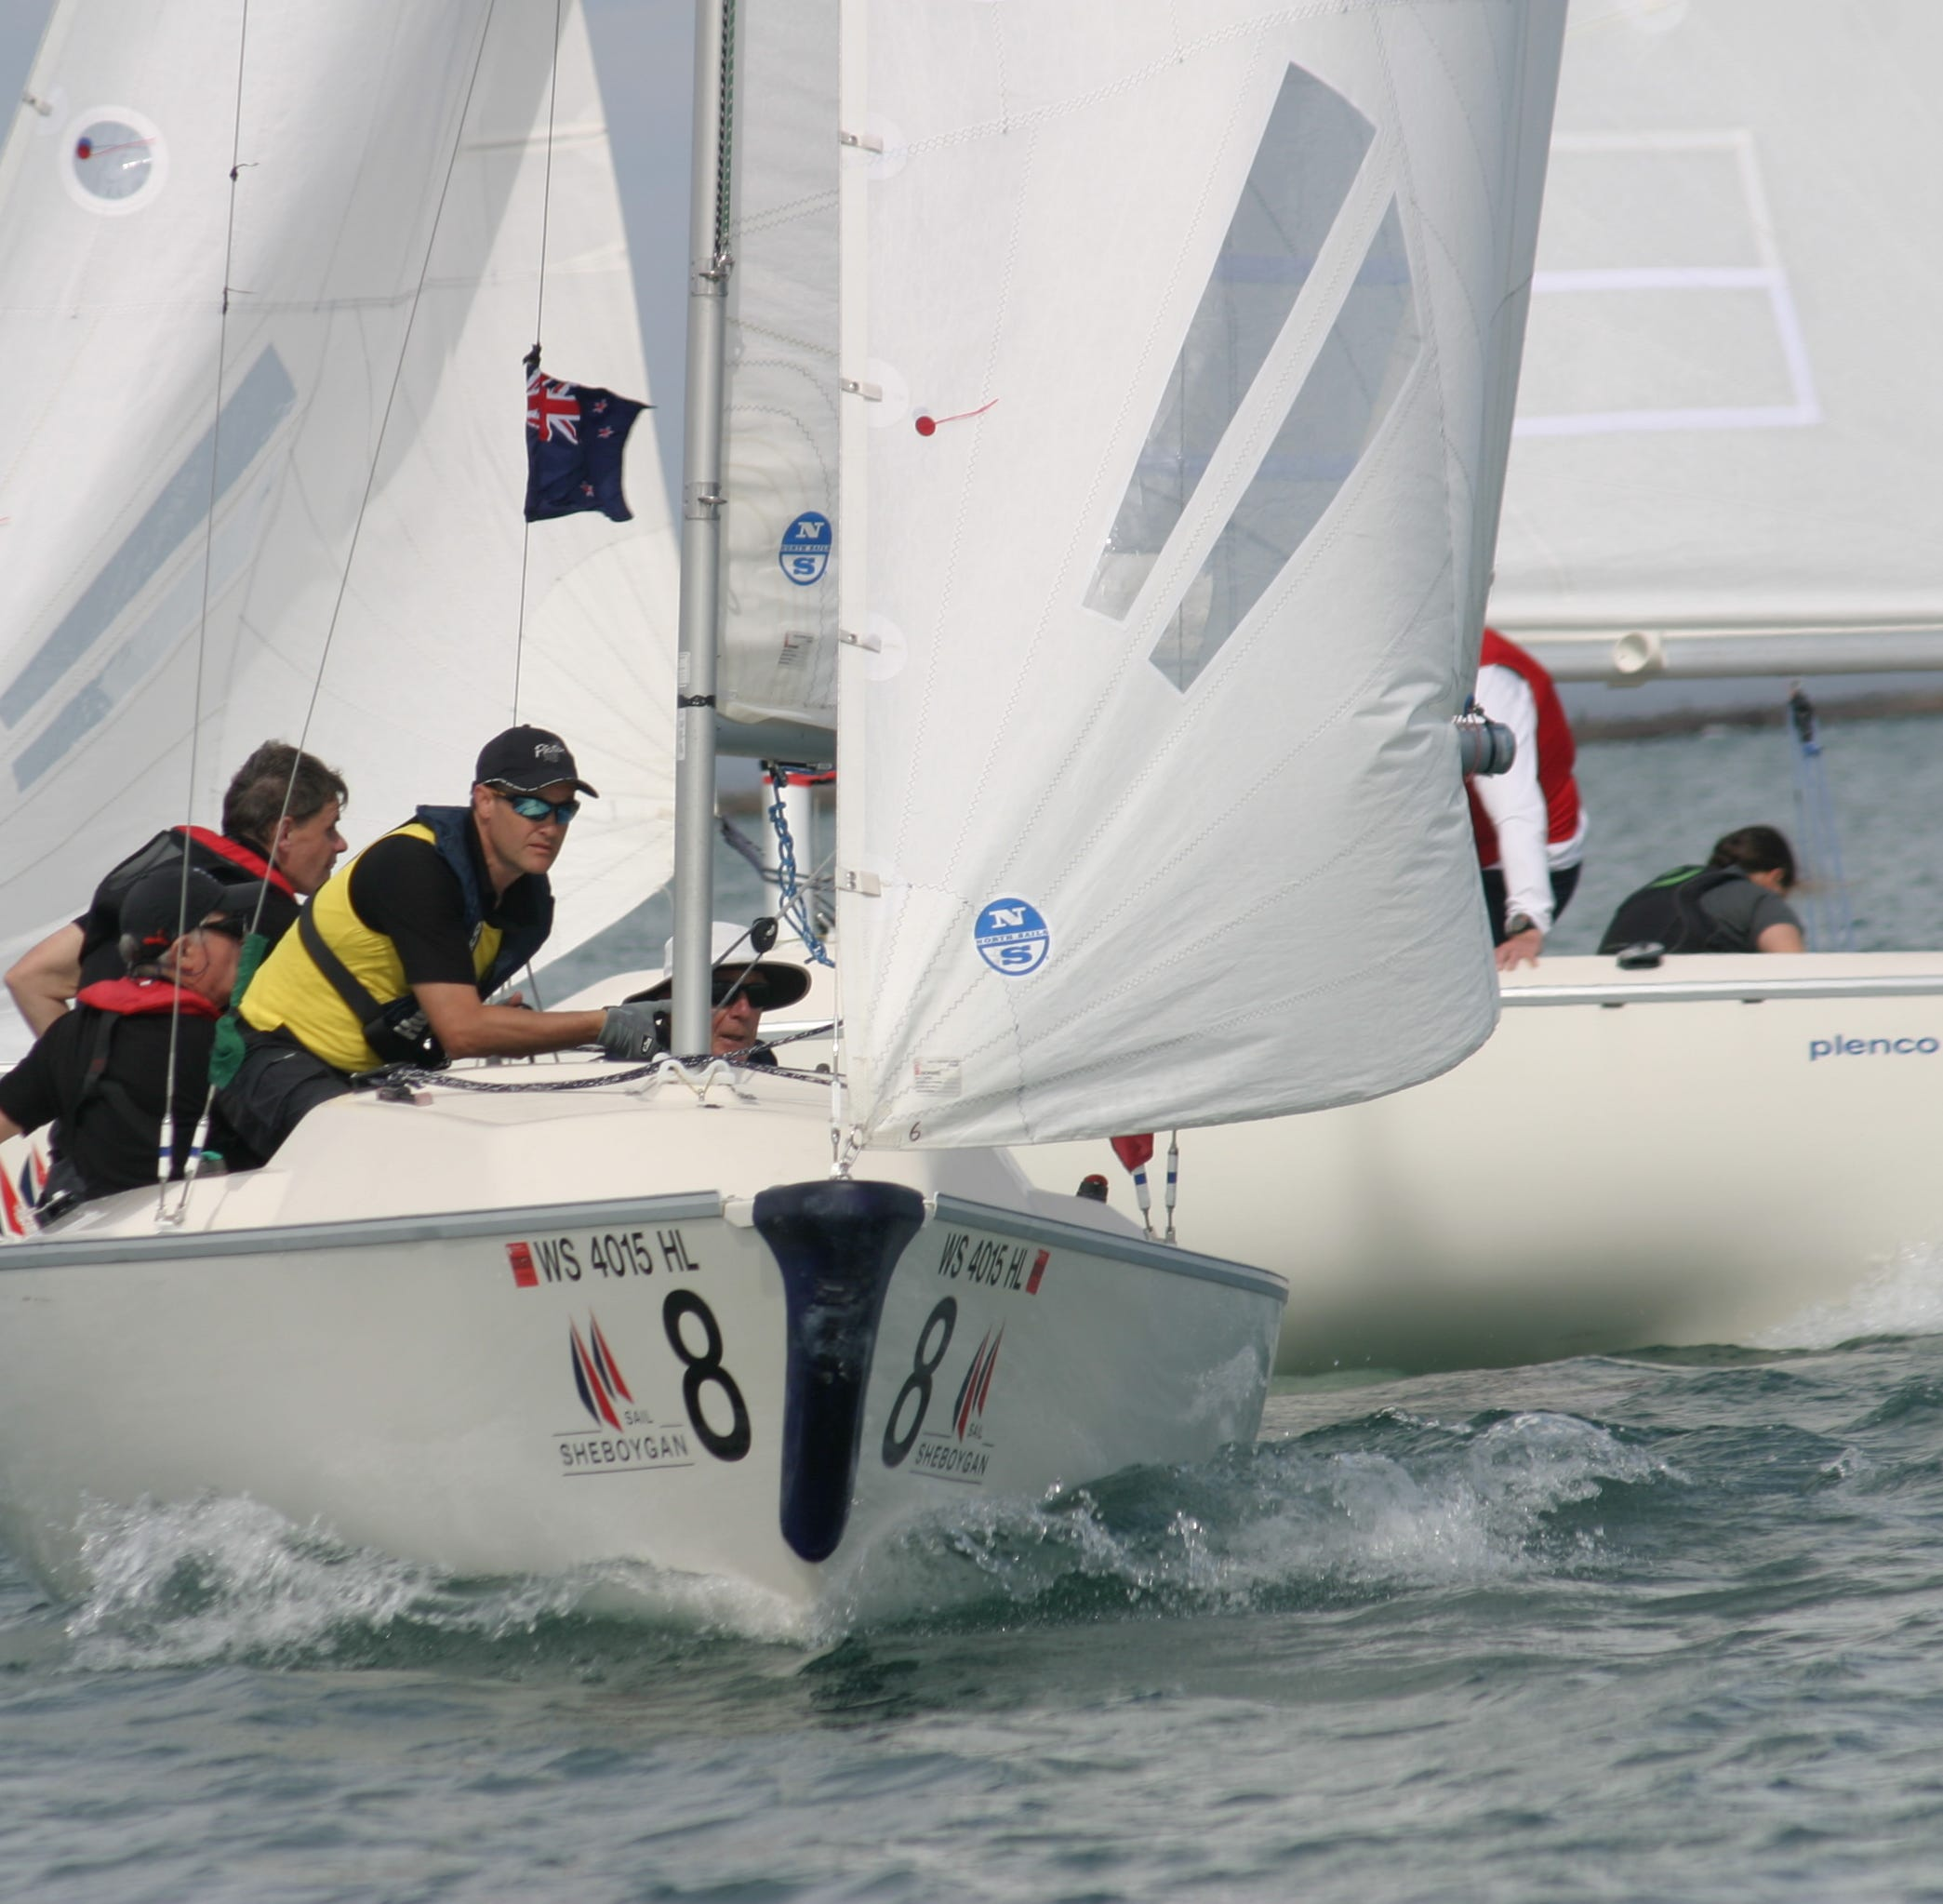 Sheboygan events: Para World Sailing Championship, Road America vintage cars top weekend